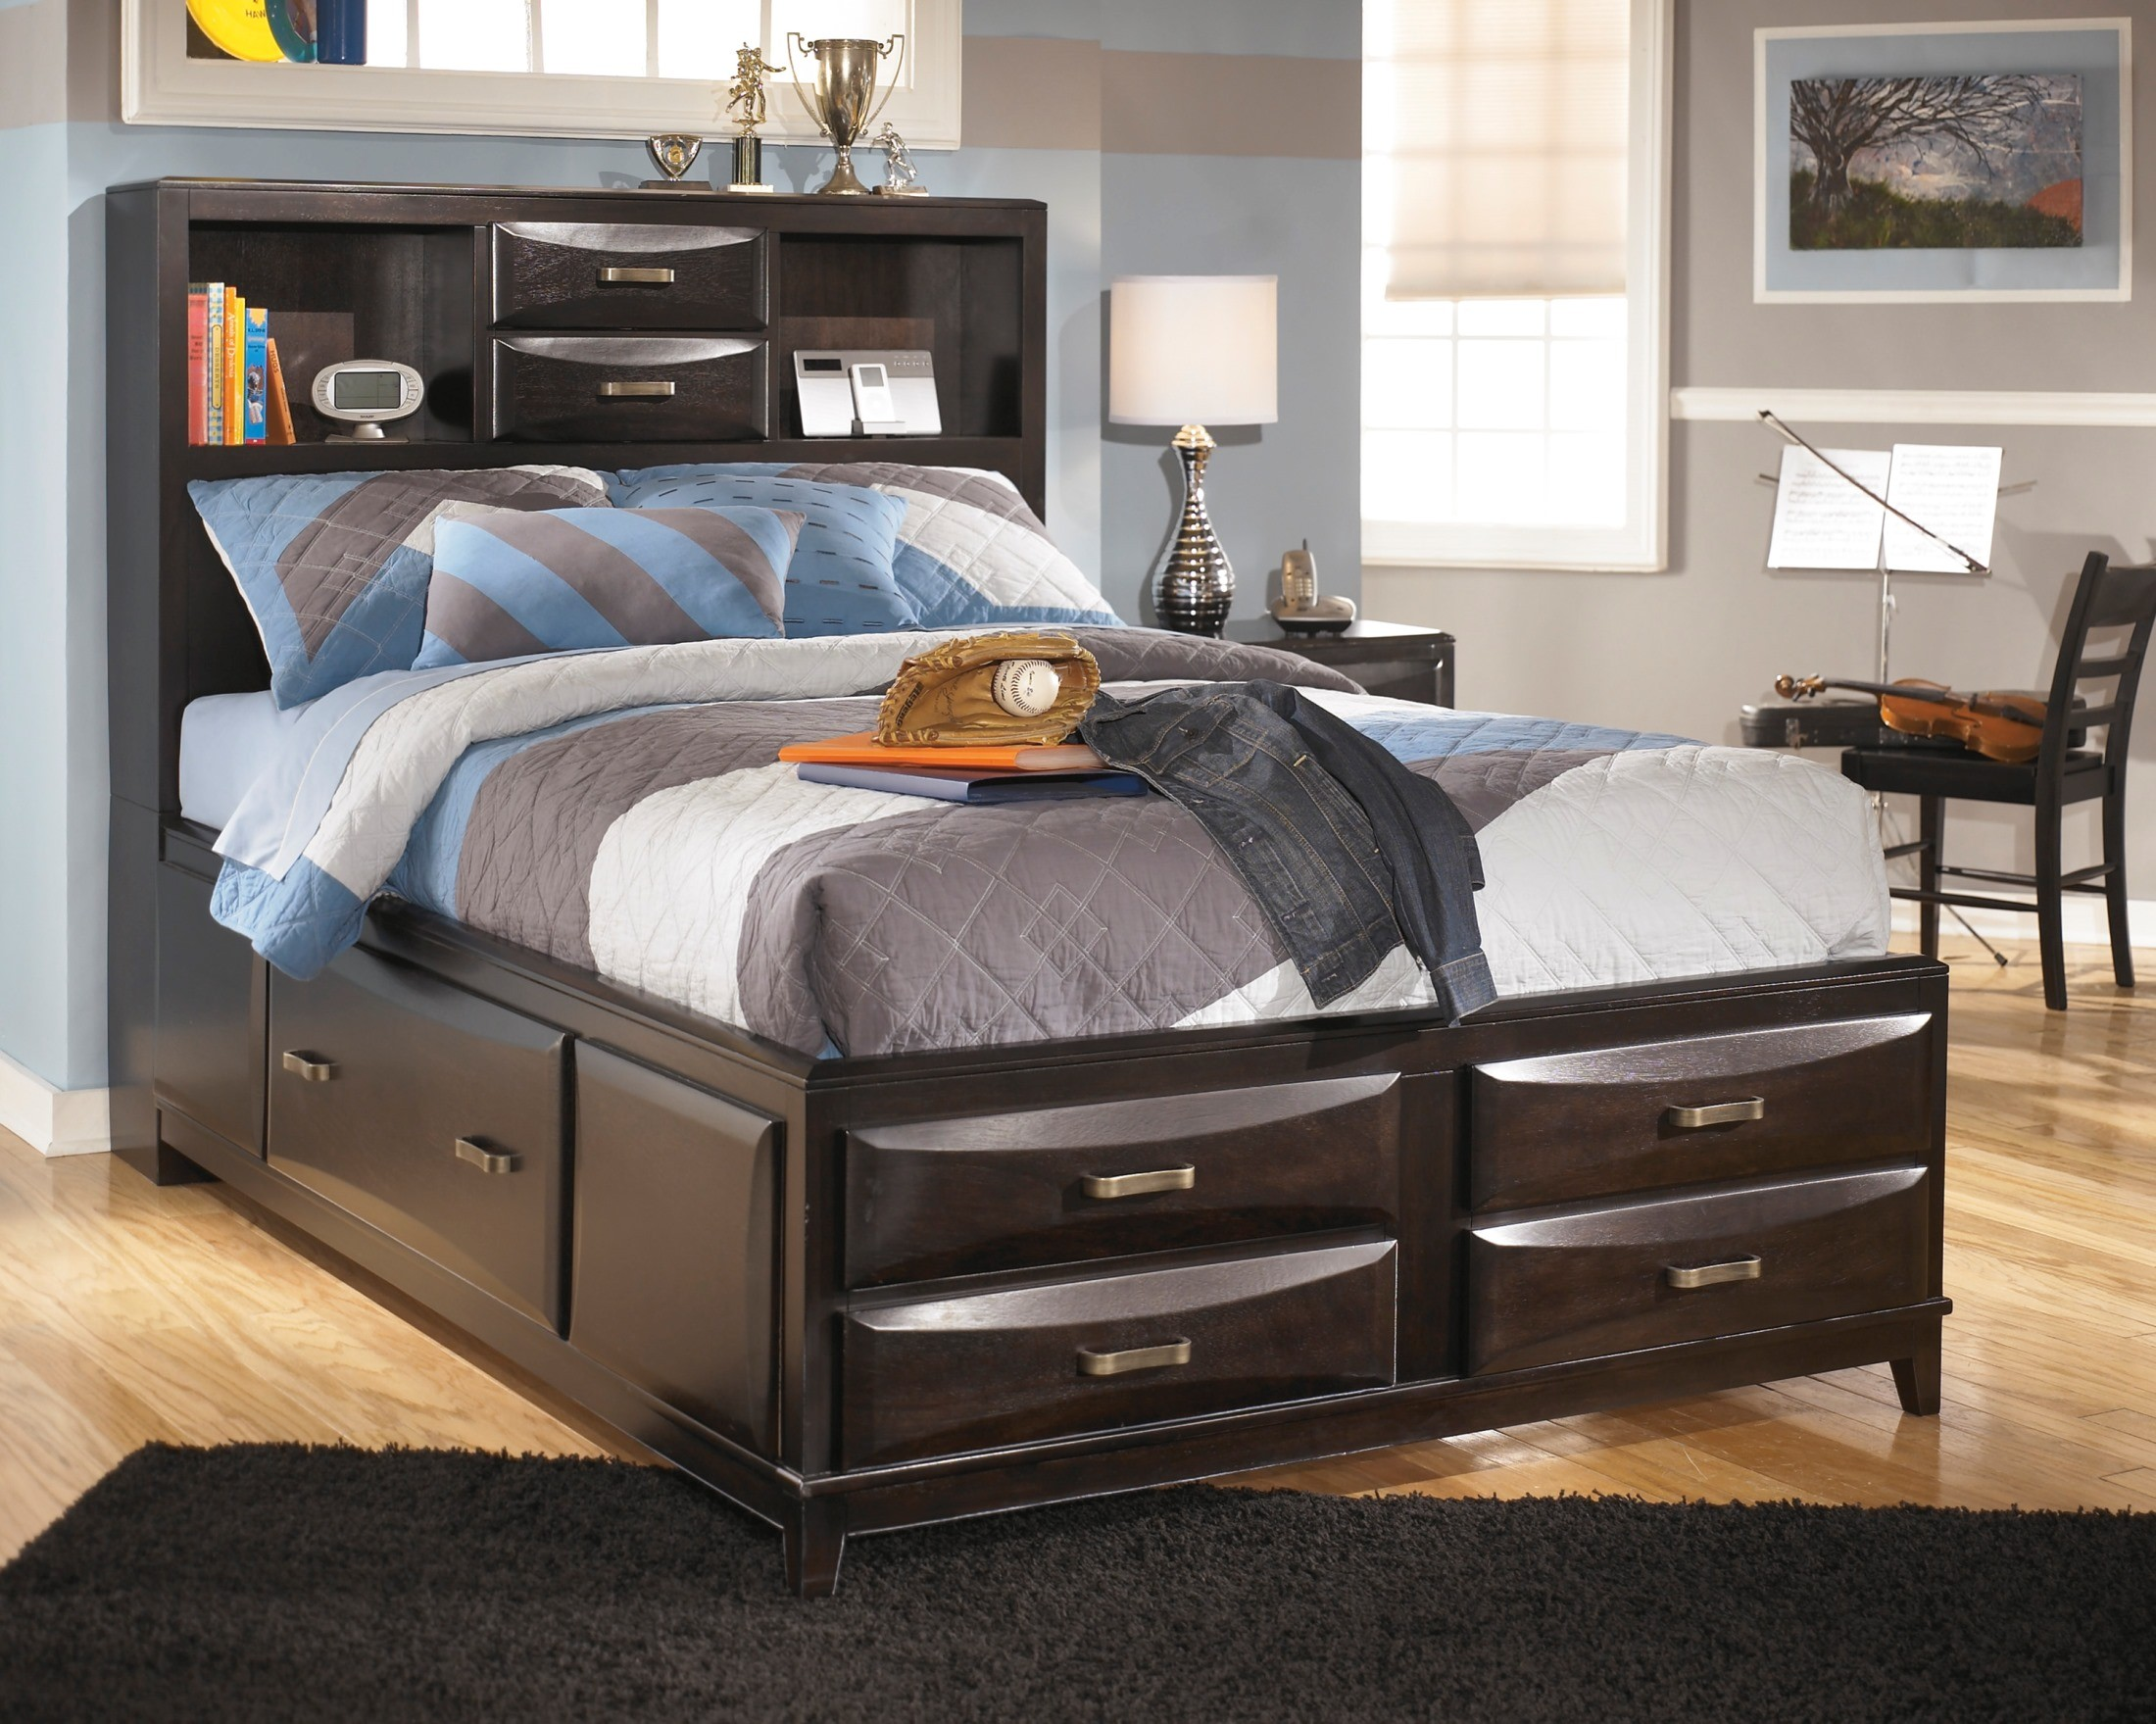 ashleys furniture beds storage bed from b473 77 74 88 10122